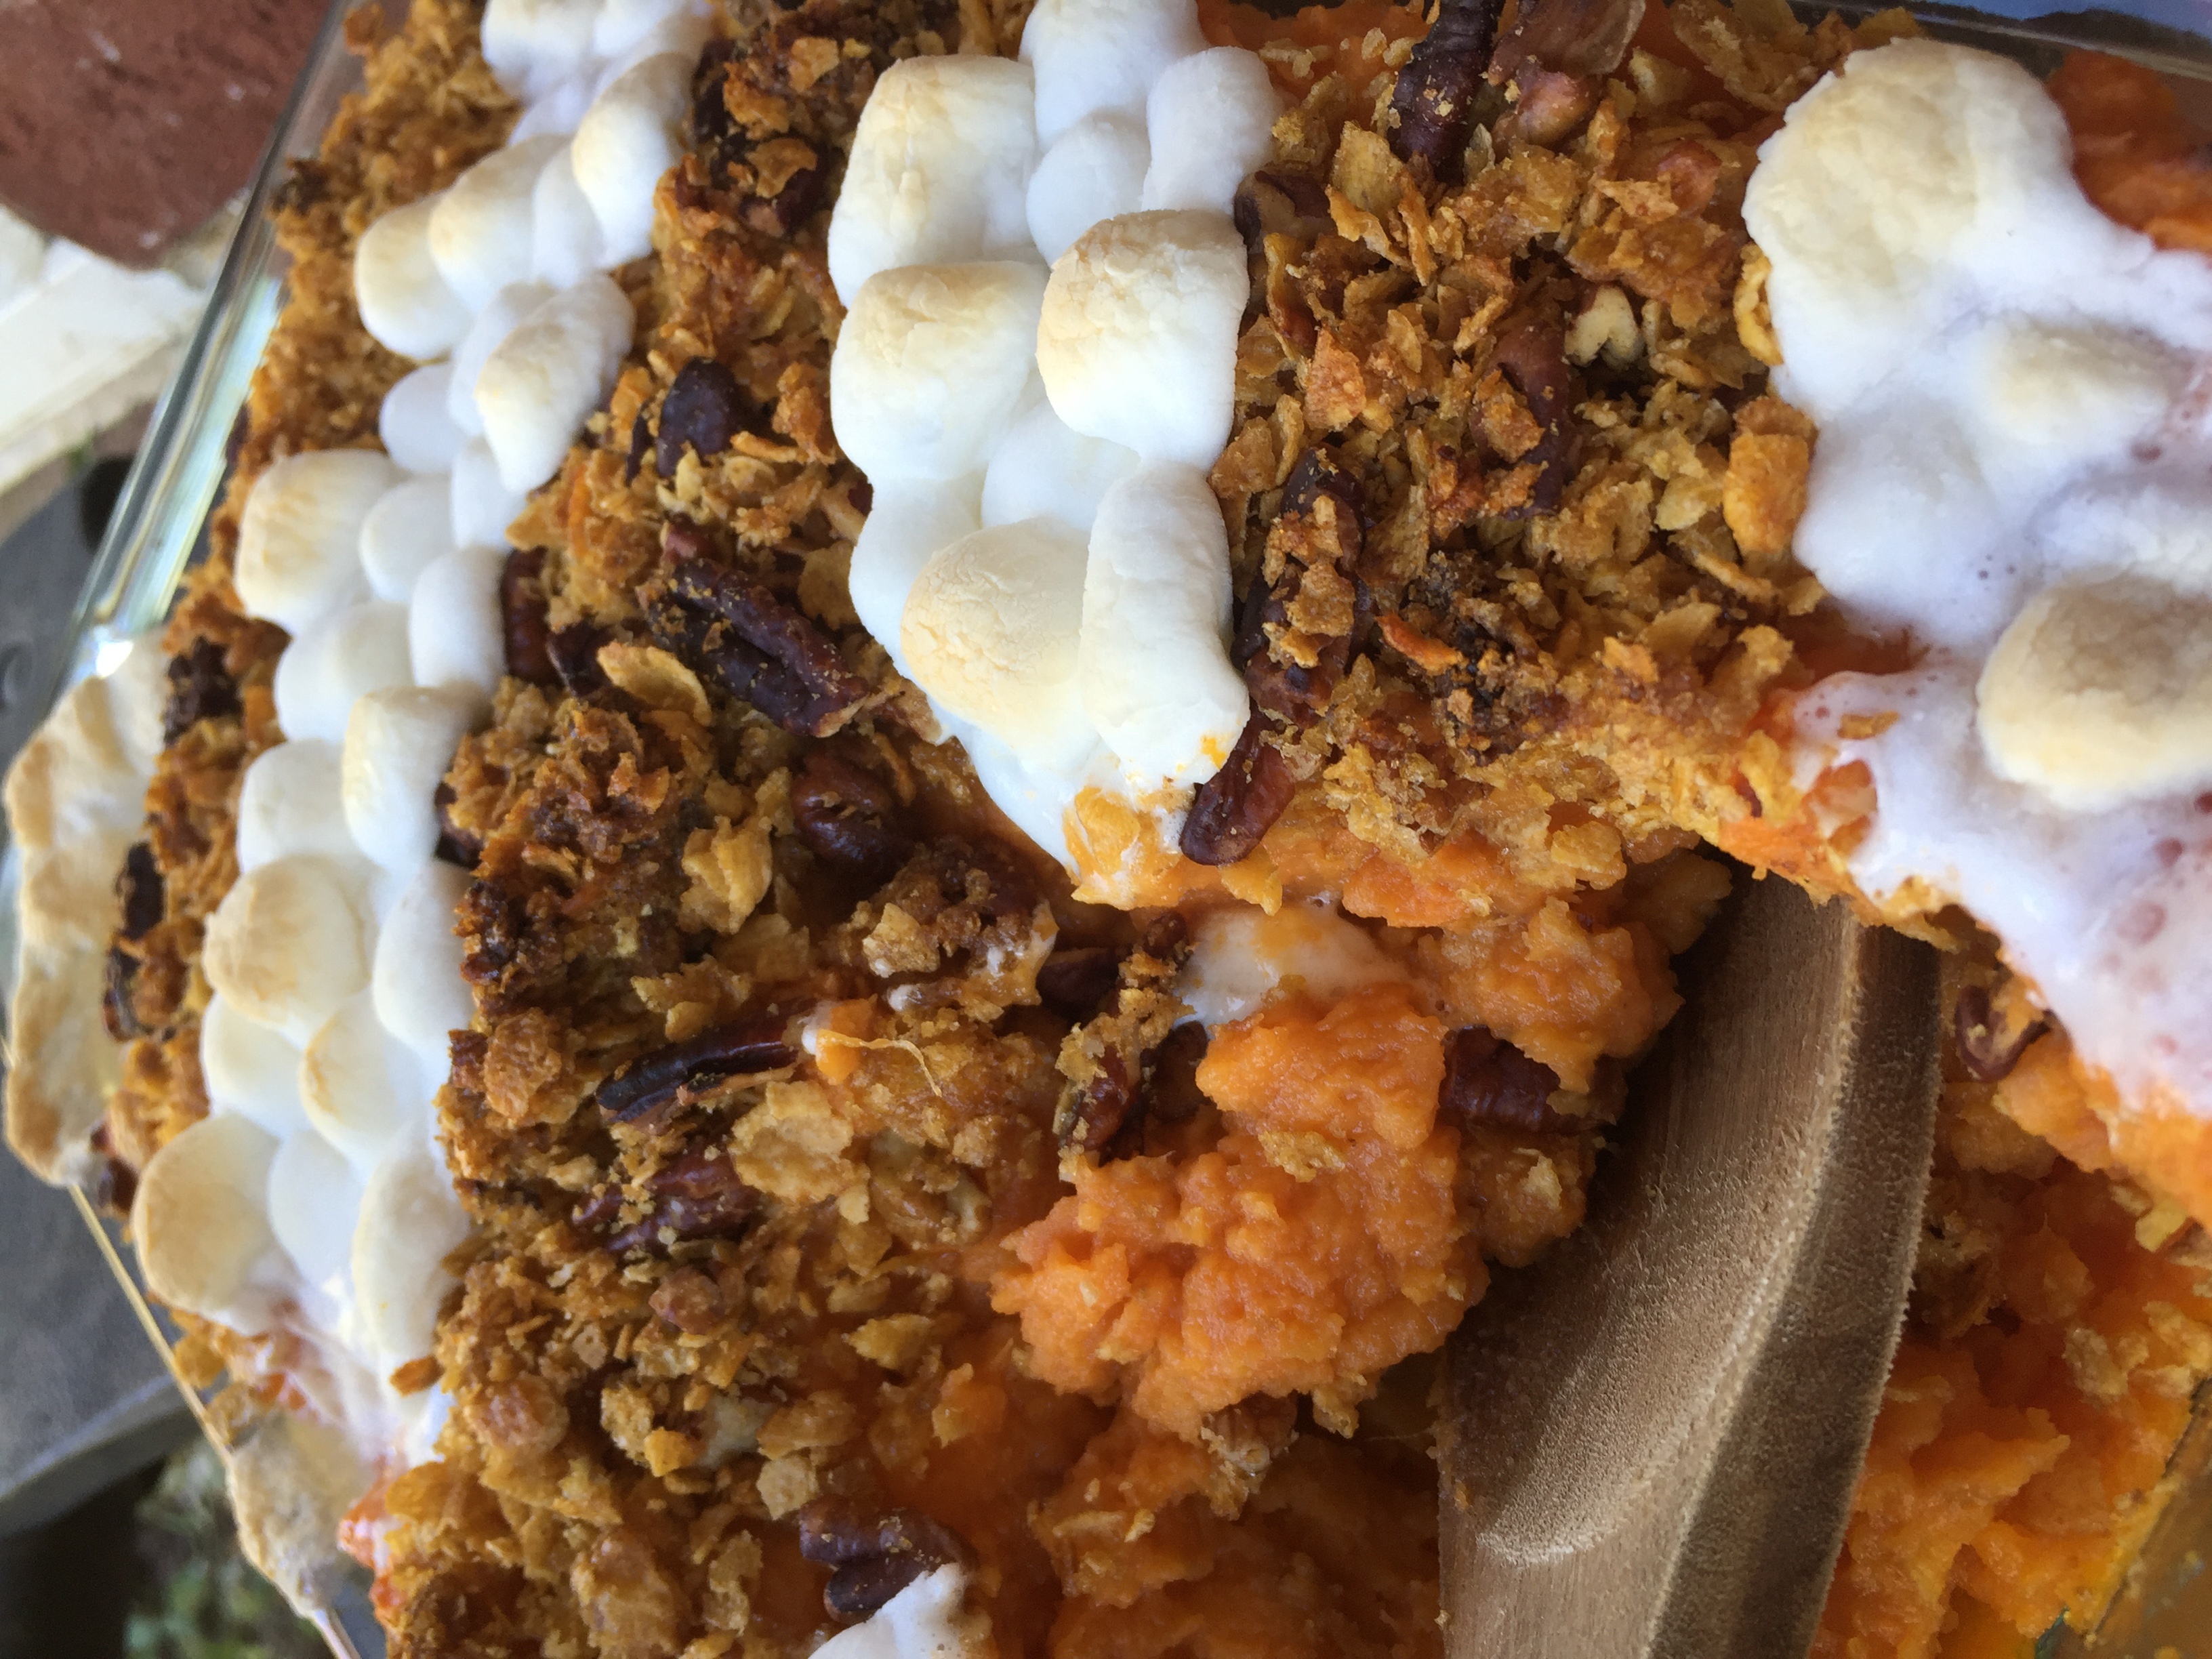 Classic Sweet Potato Casserole - Thrillbilly Gourmet